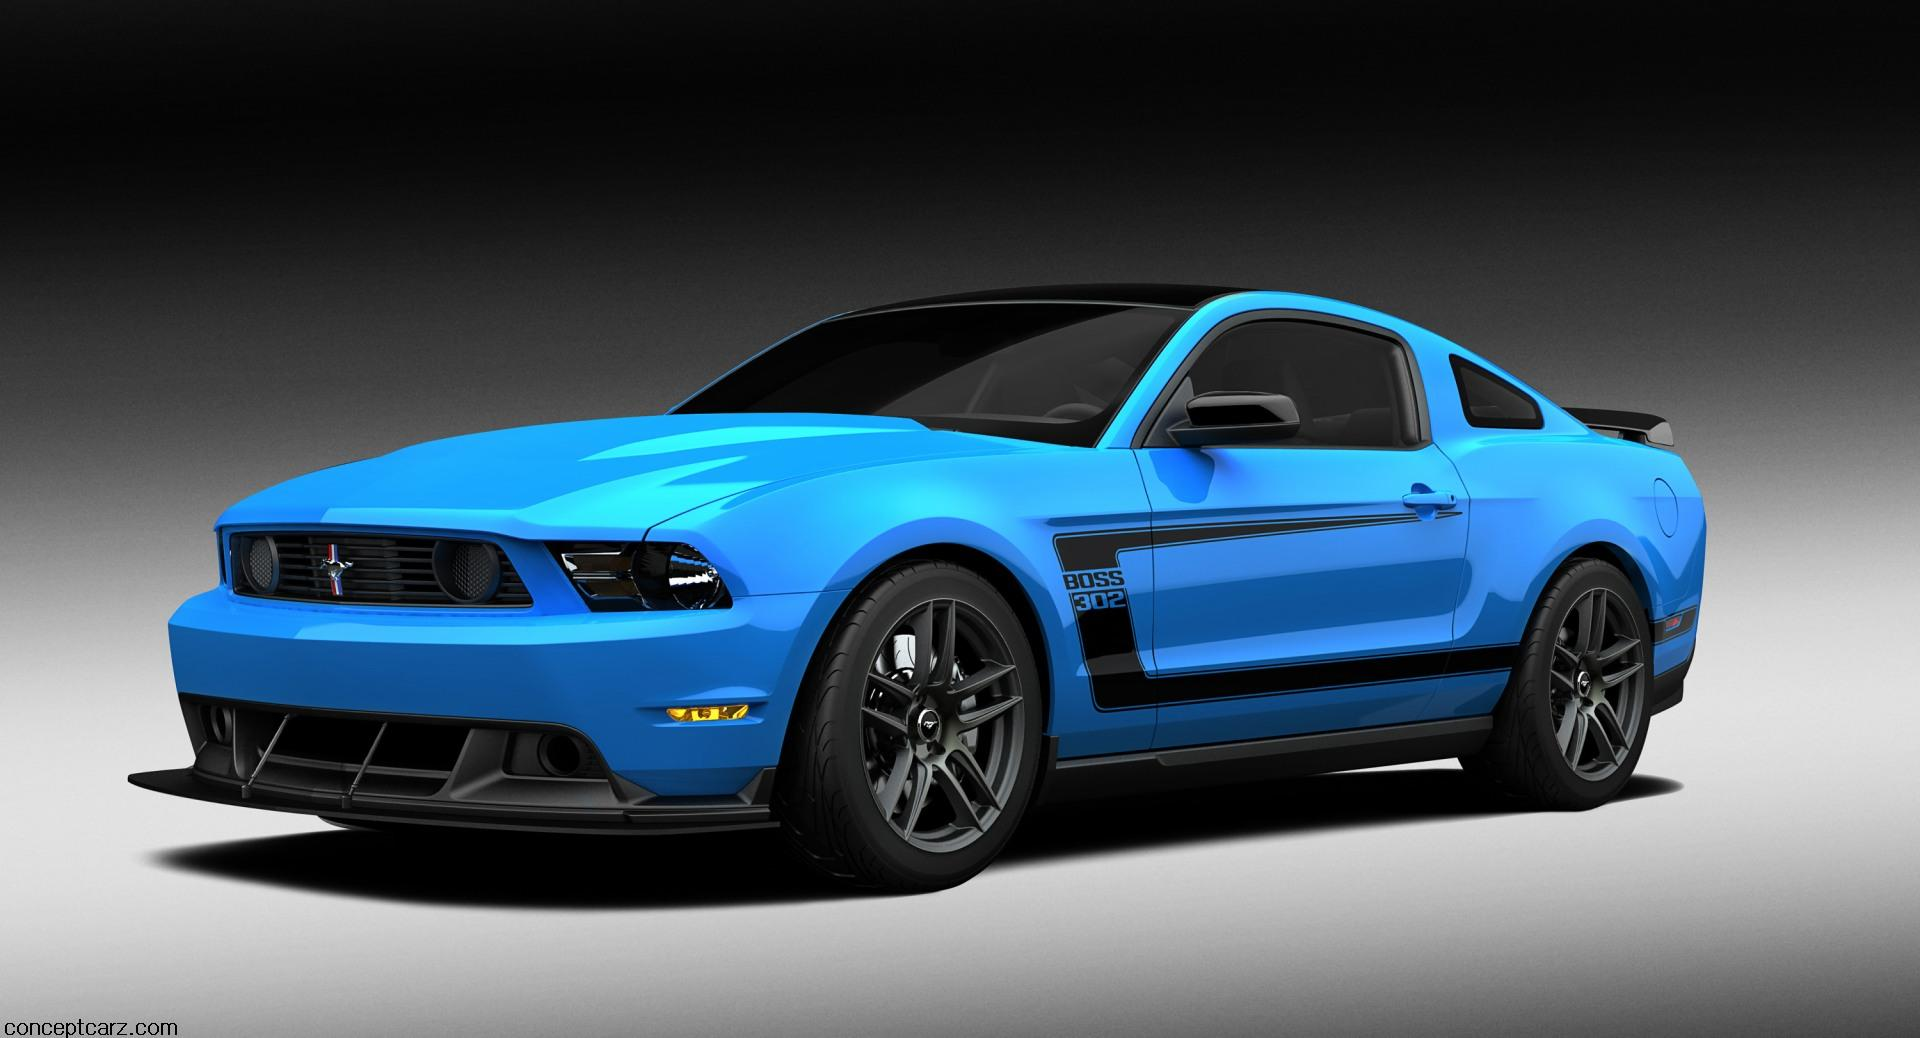 2012 Ford Mustang Grabber Blue Boss 302 Laguna Seca News and Information